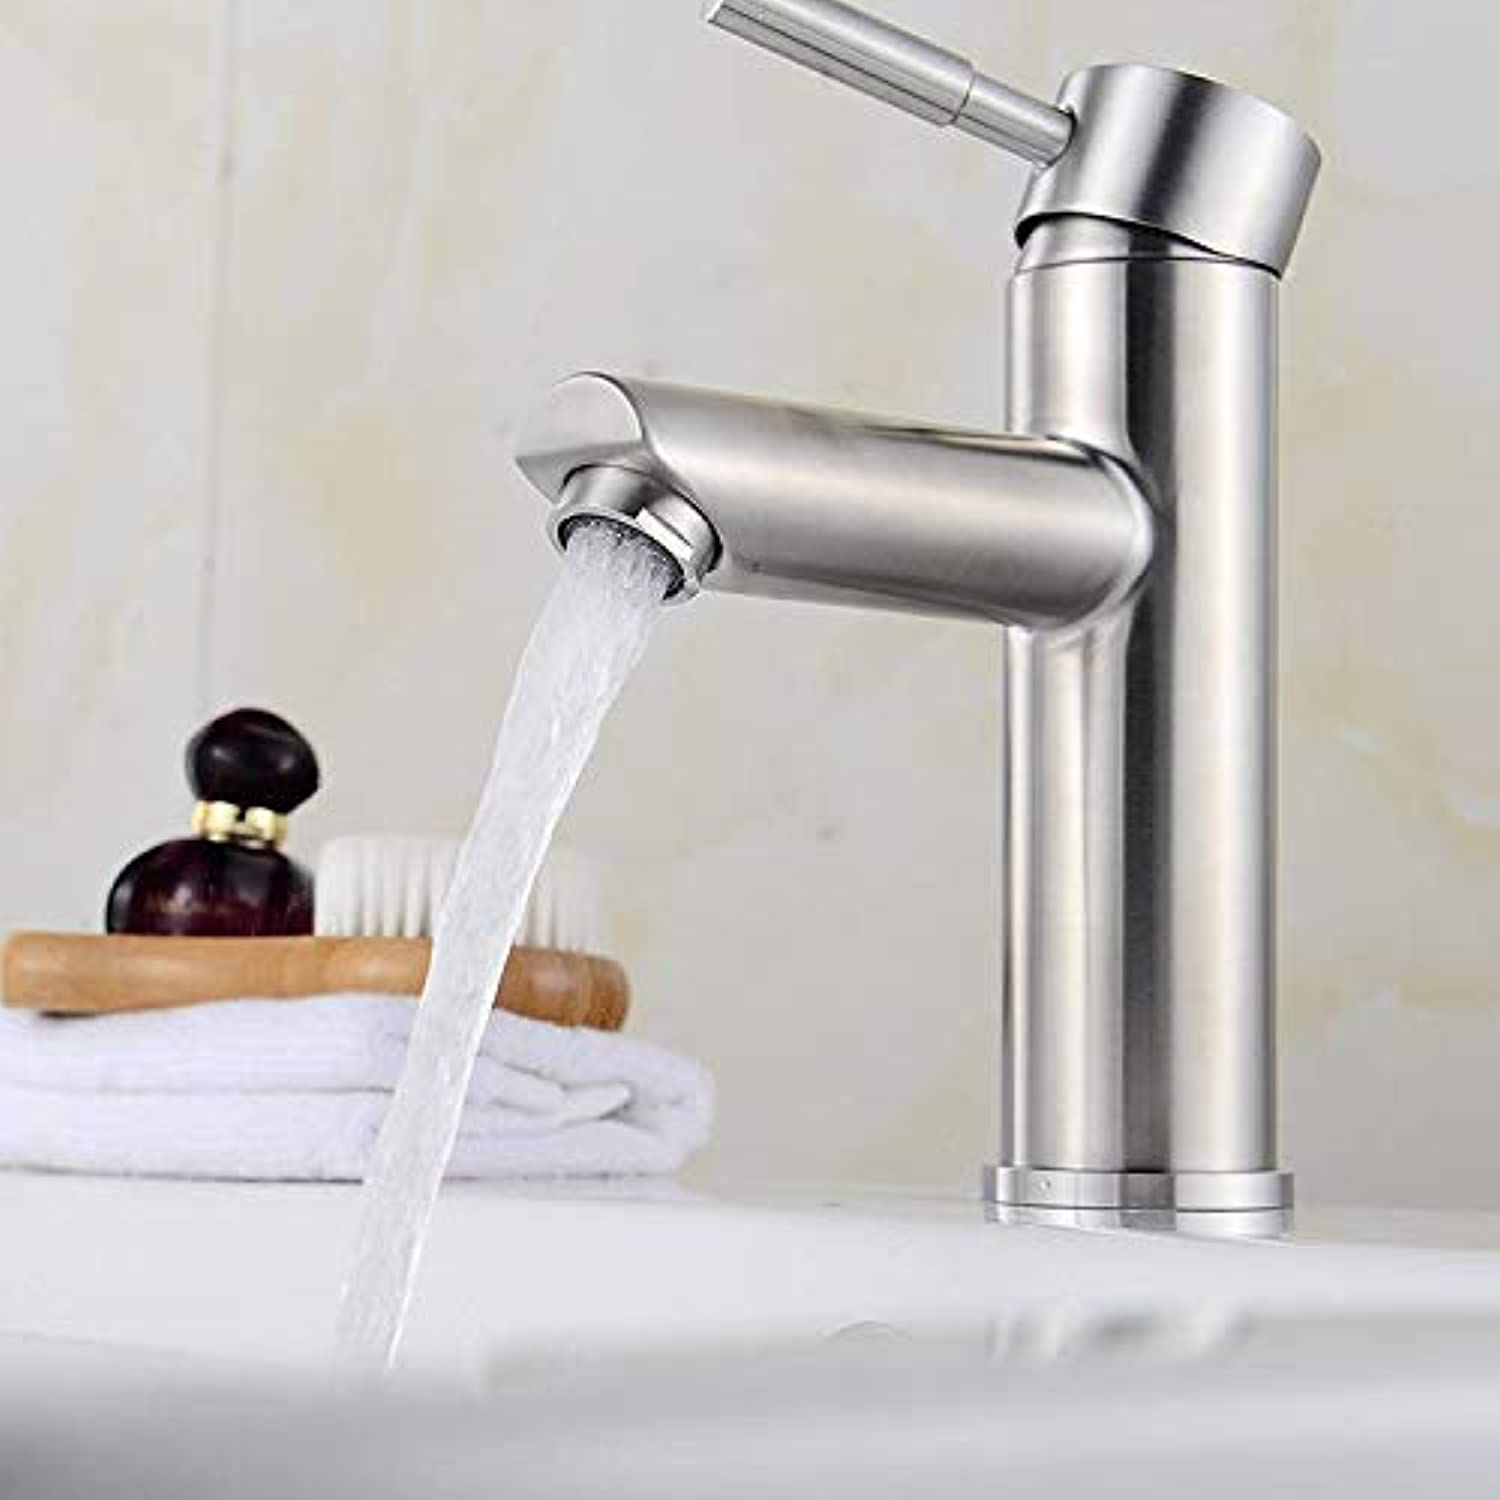 New Sus304 Stainless Steel Weight Thickening Basin Single Hole Hot and Cold Water Faucet